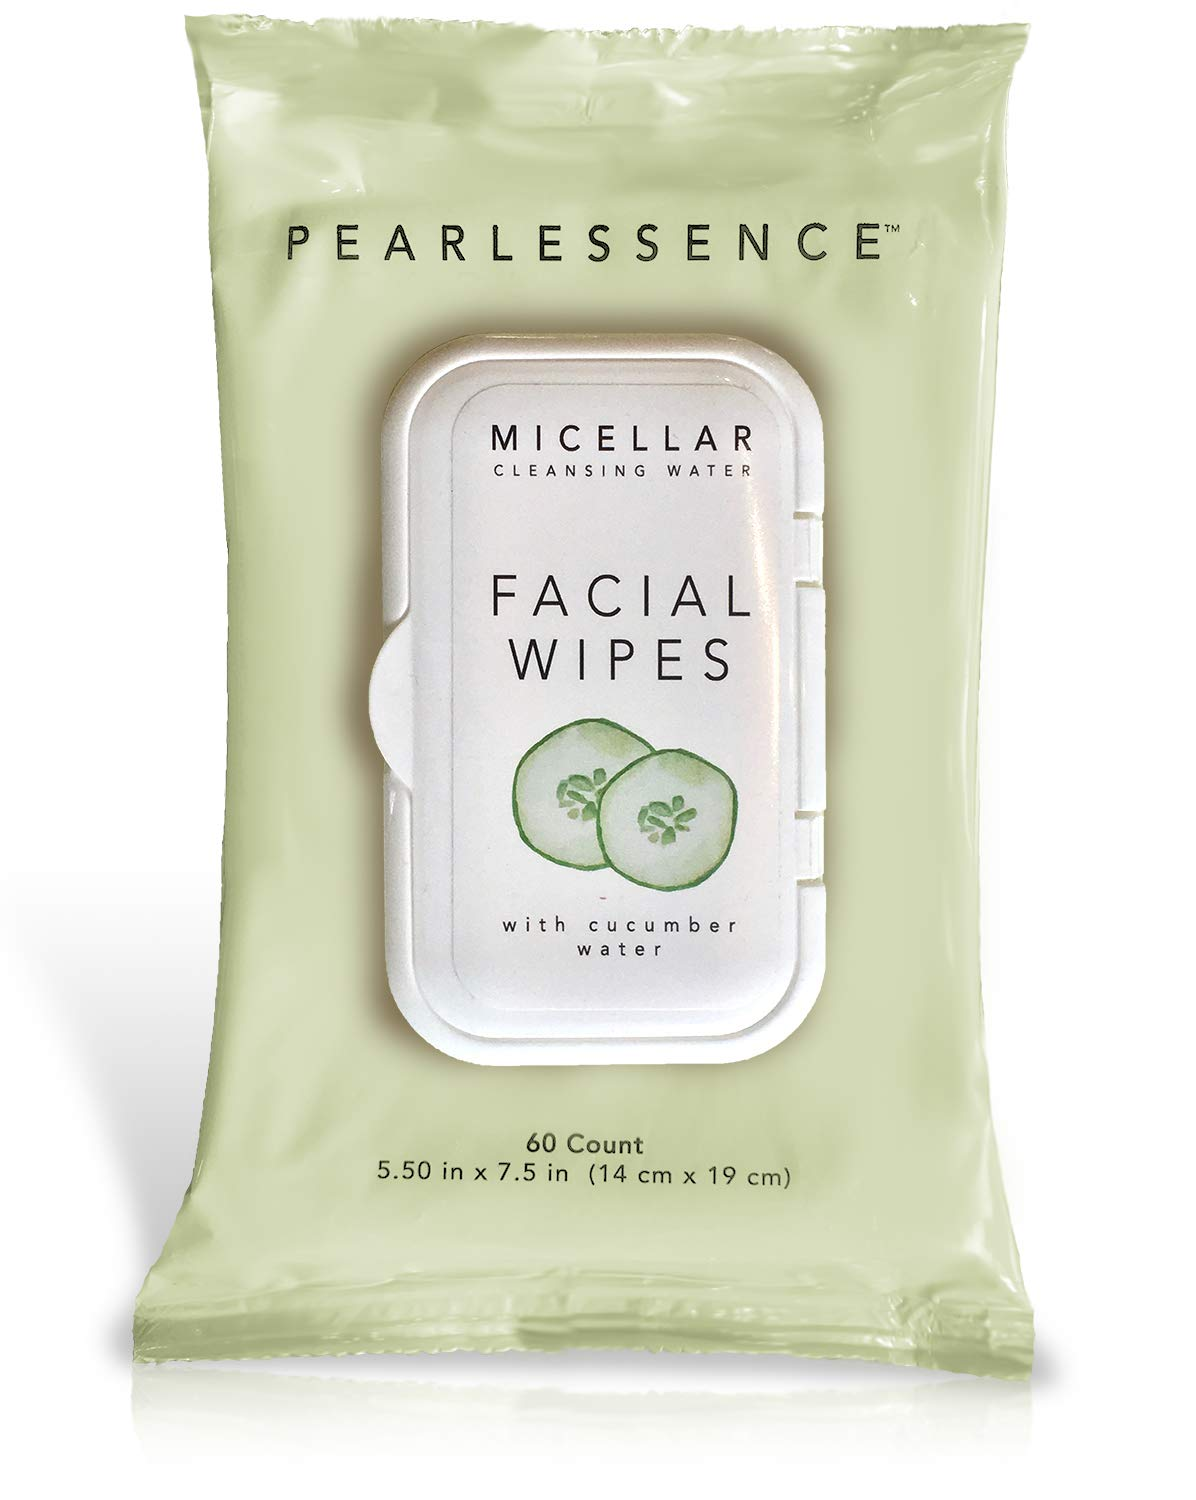 Micellar Cleansing Facial Makeup Remover Wipes w/Cucumber Water, 60 Count (1 Pack)